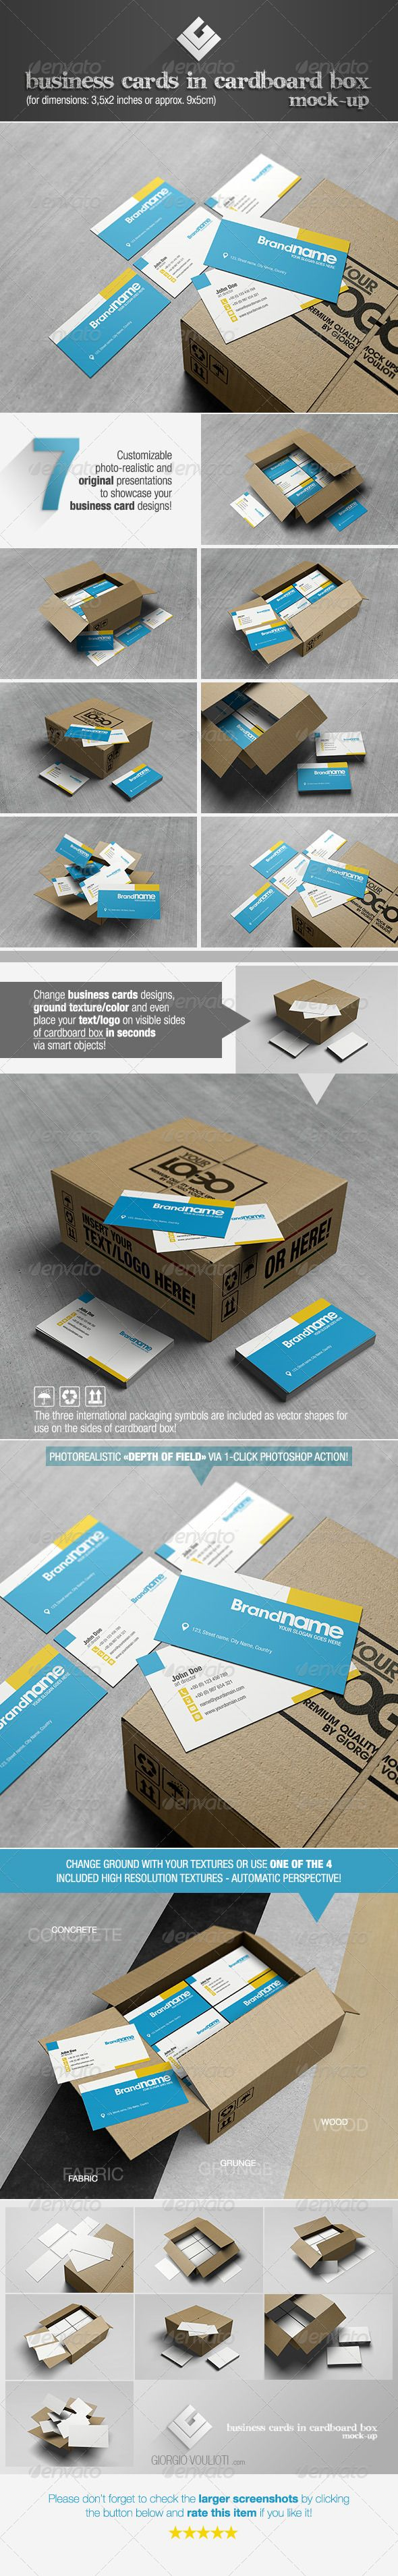 Business Cards in Cardboard Box Mock-Up :  Check out this great #graphicriver item 'Business Cards in Cardboard Box Mock-Up' http://graphicriver.net/item/business-cards-in-cardboard-box-mockup/6321546?ref=25EGY